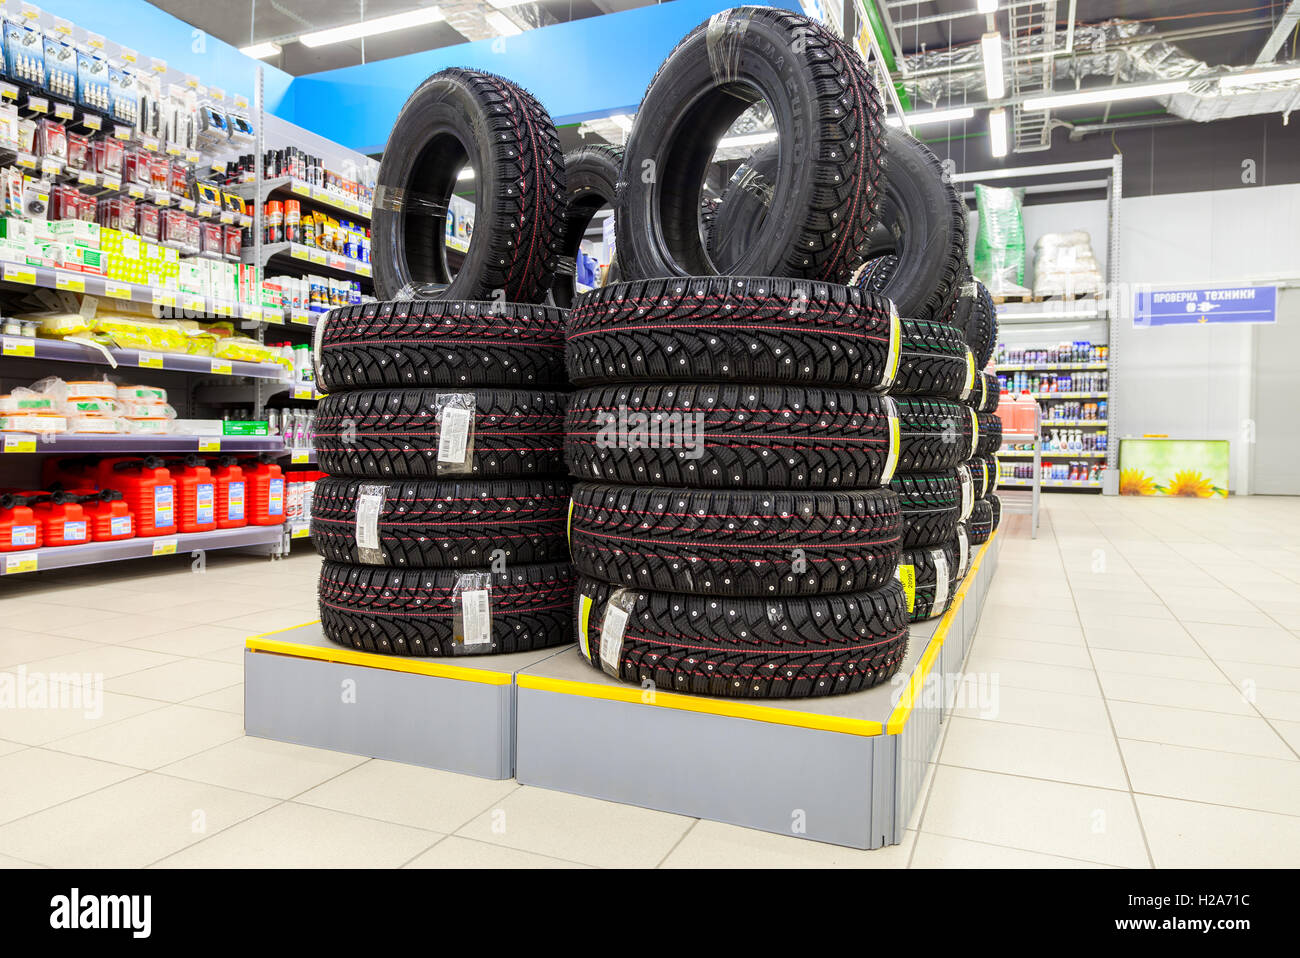 Brand new winter tires stacked up for sale in the hypermarket Lenta - Stock Image